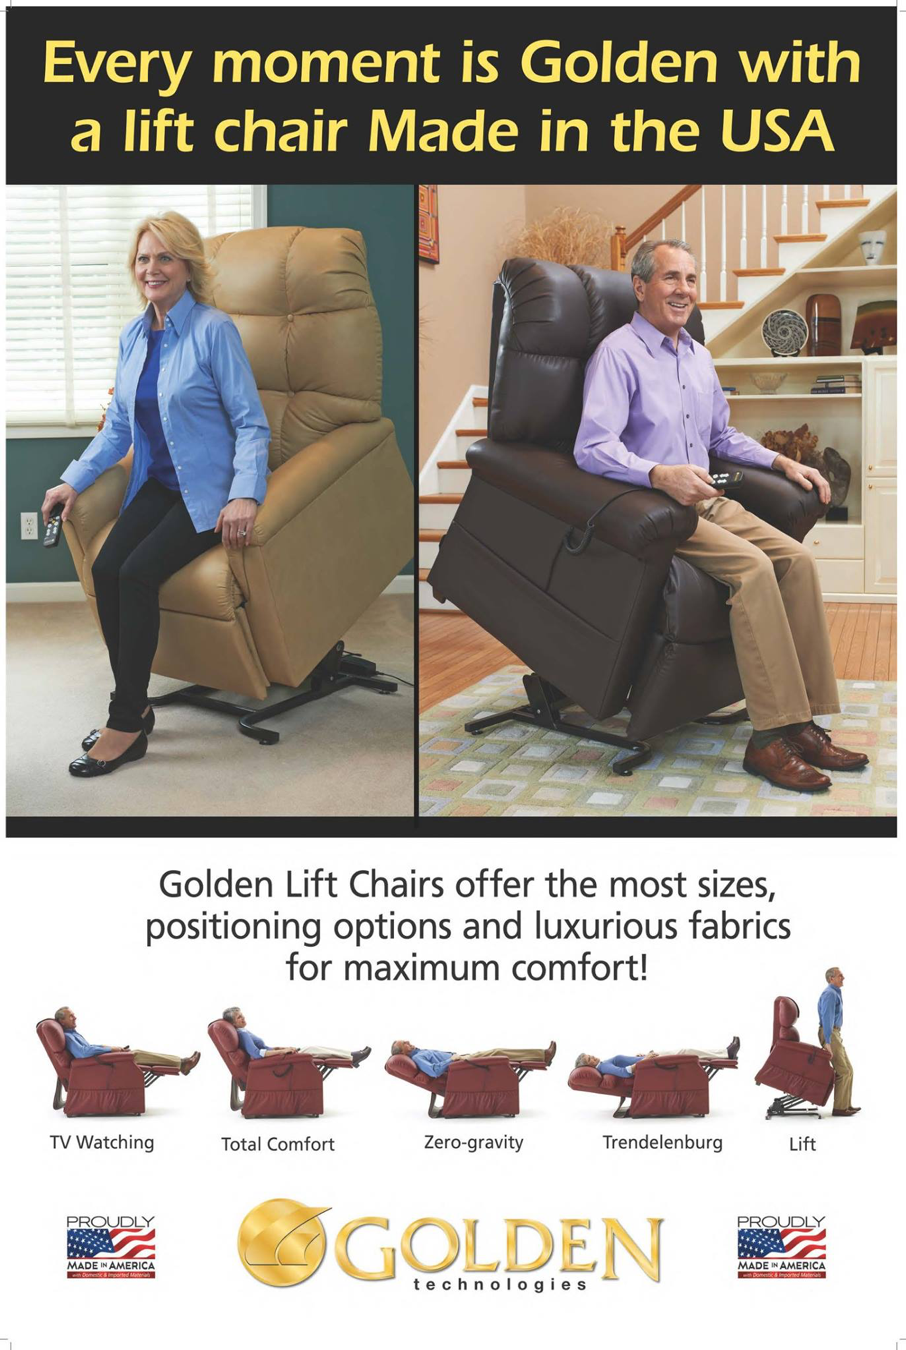 lift-chair-golden-technologies